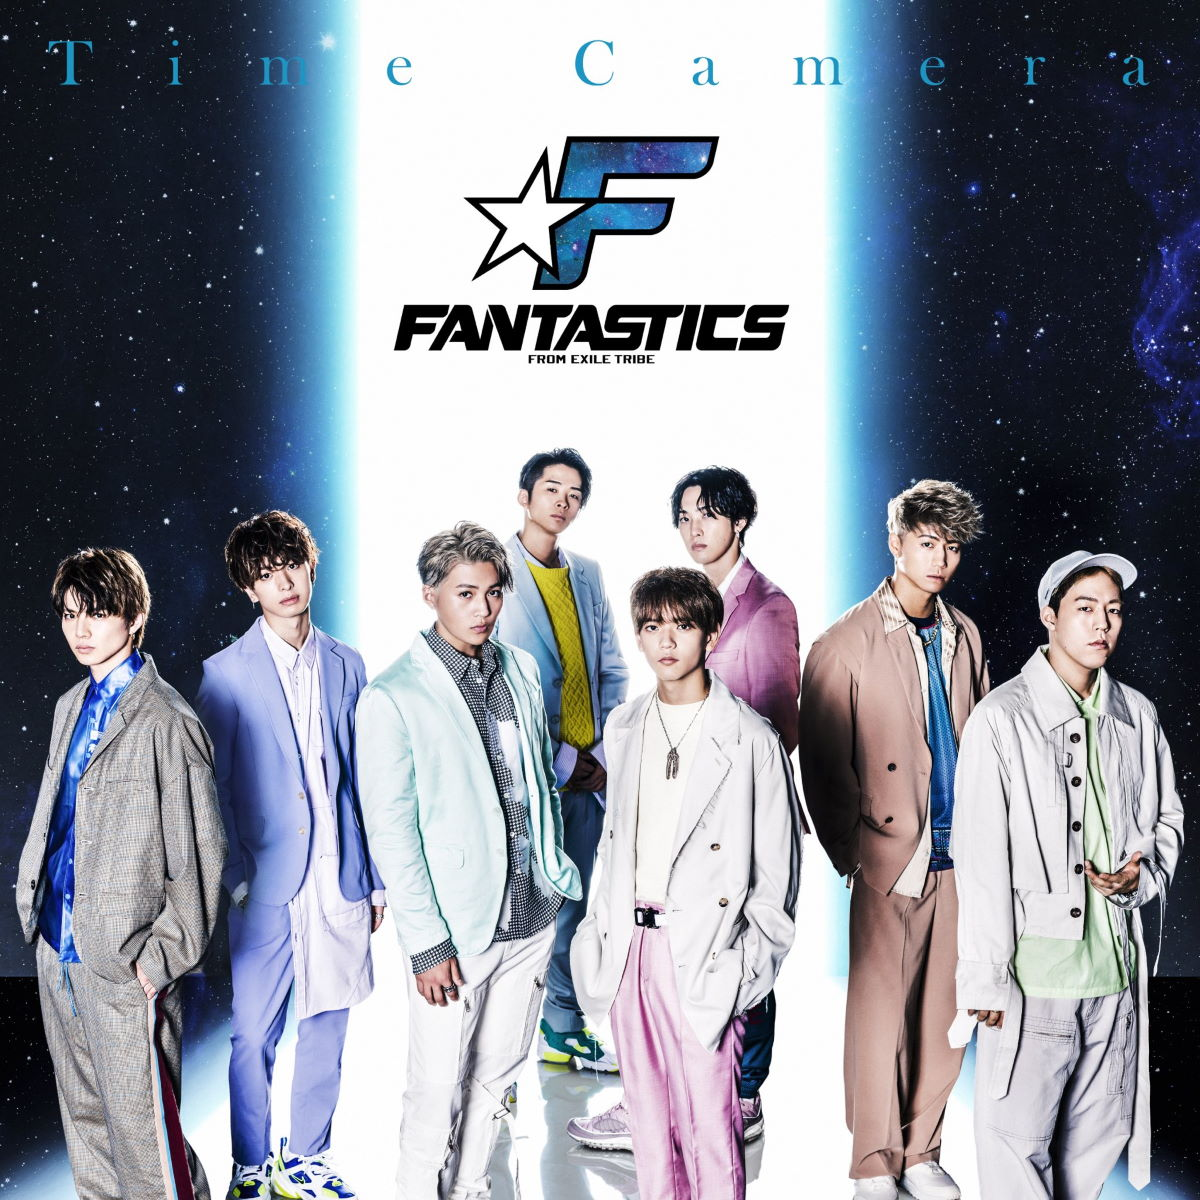 『FANTASTICS from EXILE TRIBE - Time Camera』収録の『Time Camera』ジャケット